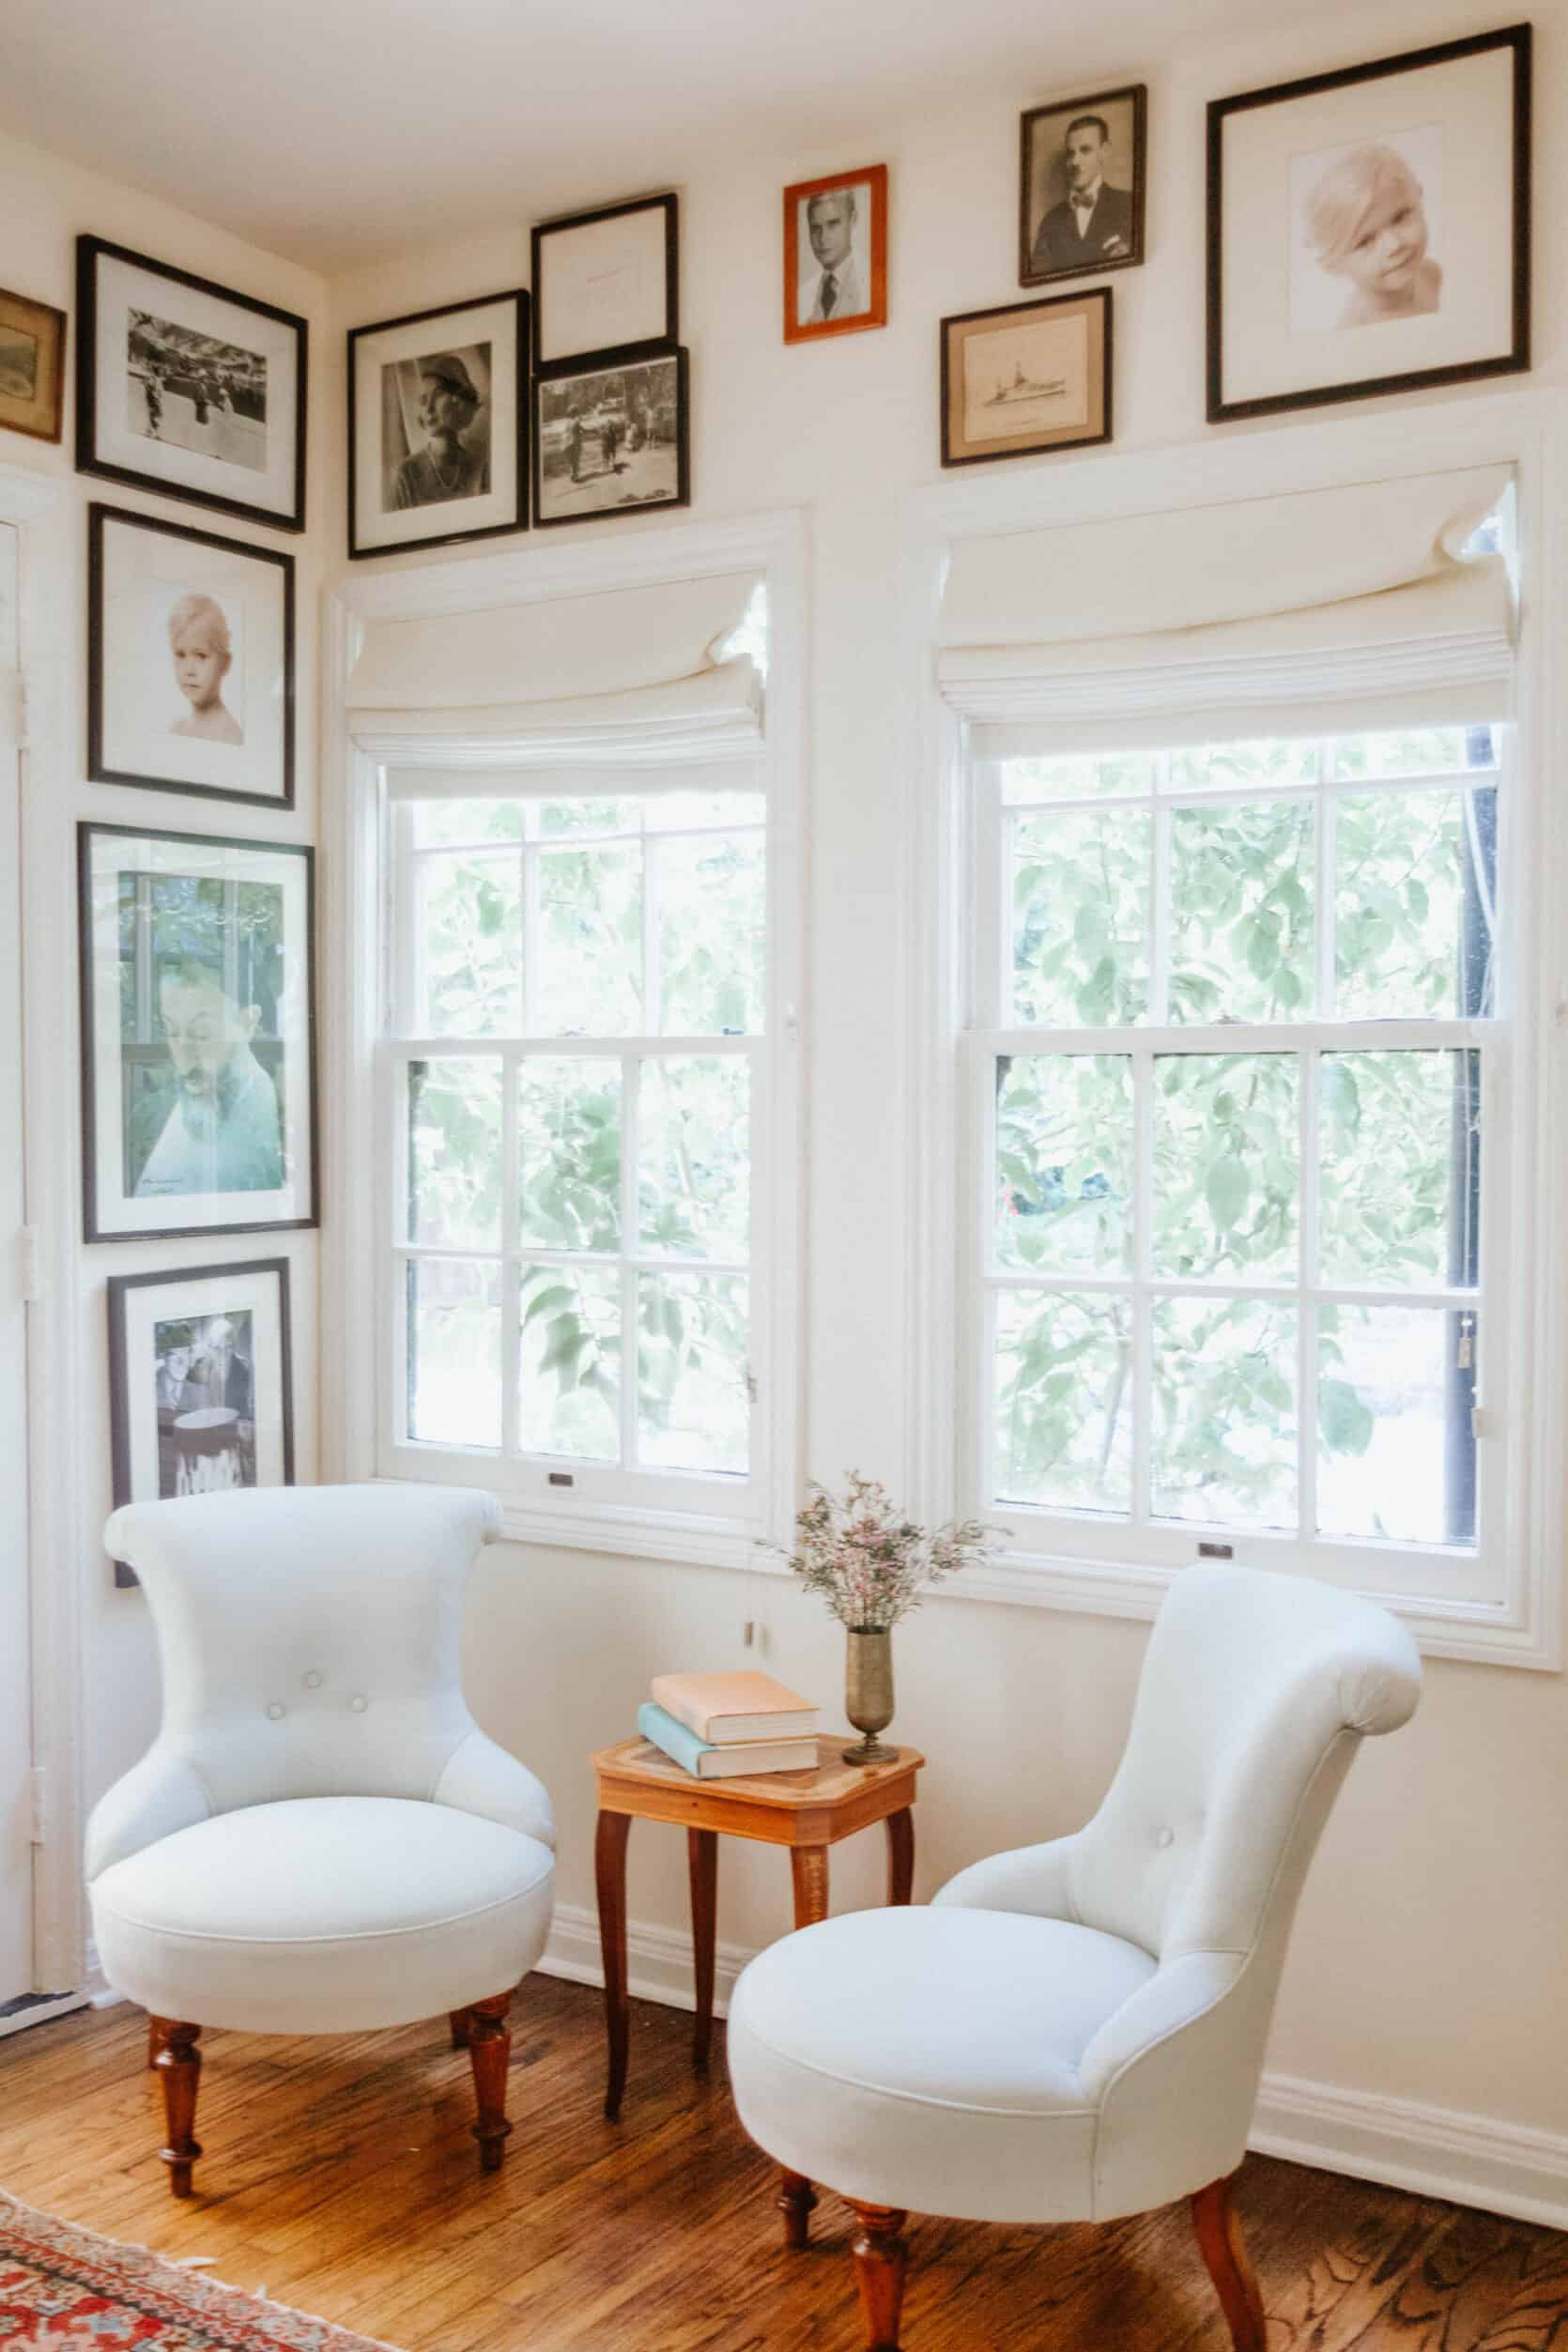 How to Lean Into Eclectic Granny The Minimalist Way (Via A Vintage Lover's Dream Home Tour) Best Children's Lighting & Home Decor Online Store